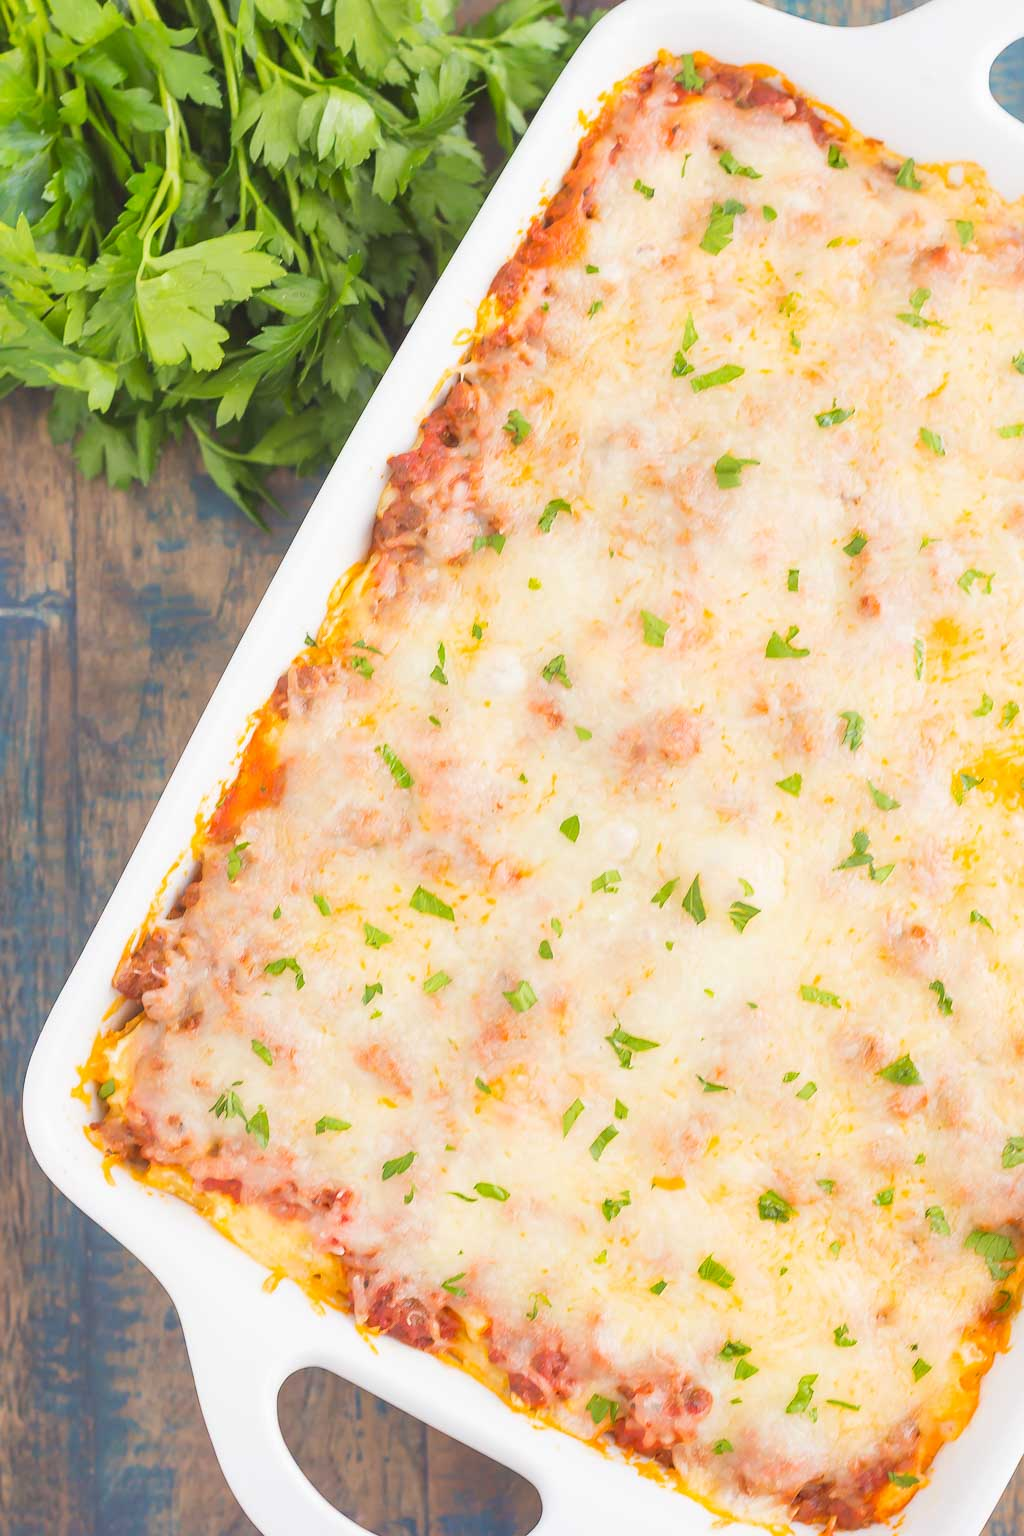 This Easy Baked Ziti is made with simple ingredients, full of flavor, and ready in less than an hour. Loaded with an easy meat sauce, tender pasta, and three types of cheese, this comfort dish is sure to be a dinnertime crowd-pleaser!